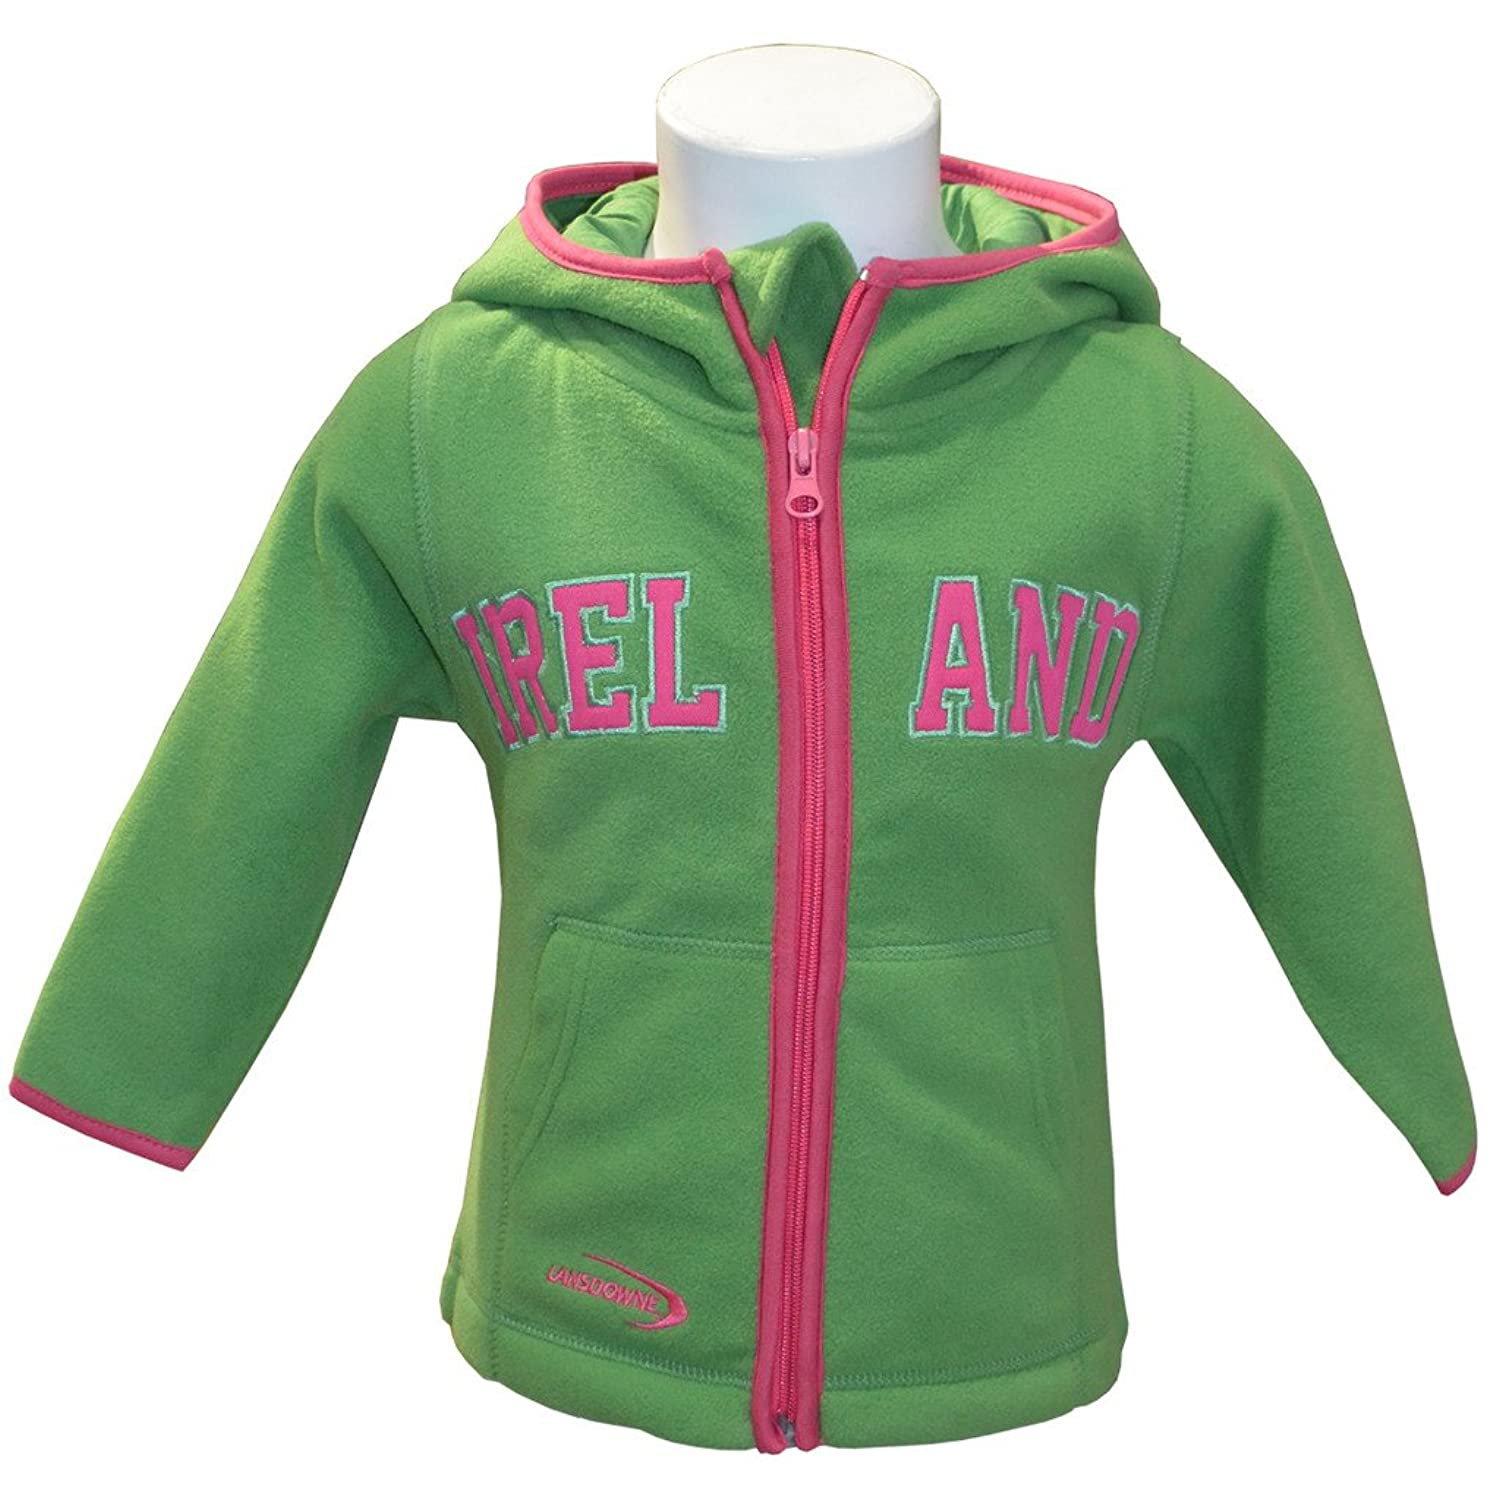 Emerald Green Full Zip Hoodie With Pink Trim Design And Ireland Text